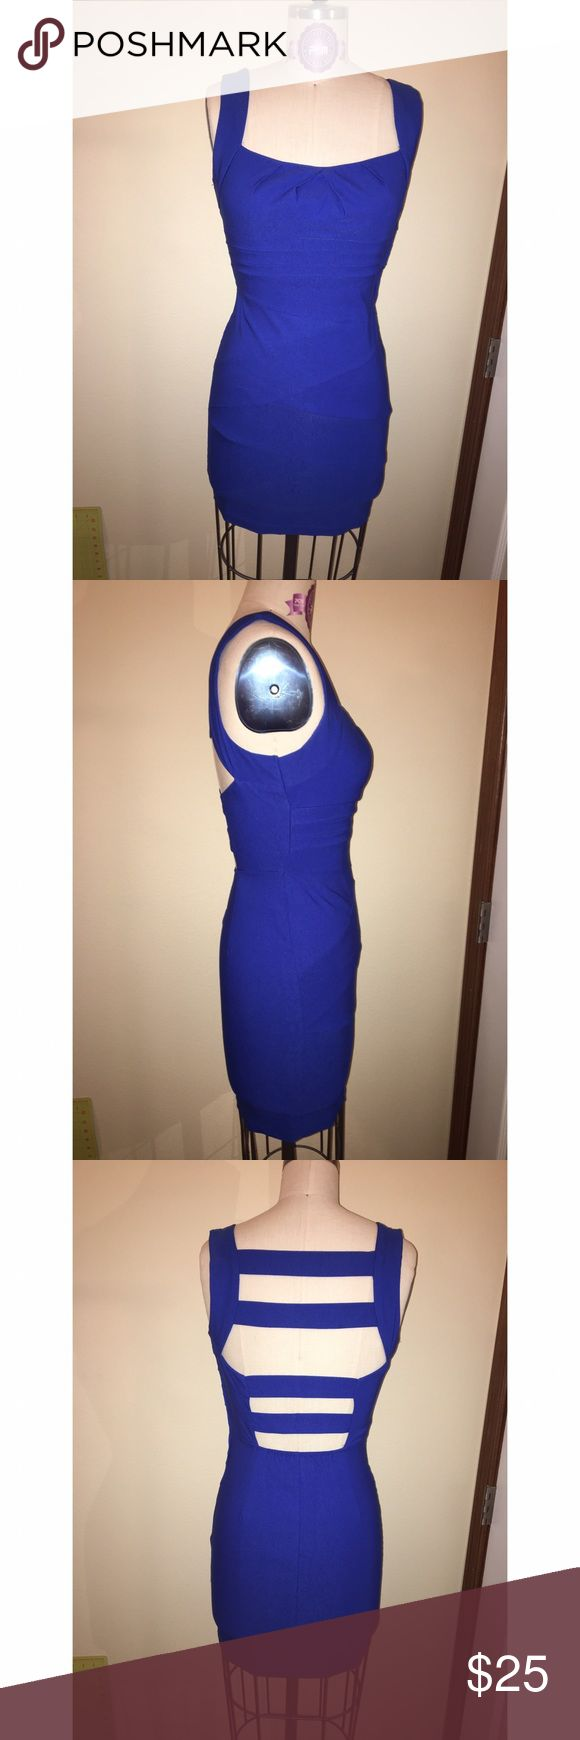 Blue bodycon dress w/ strappy back Blue bodycon dress. 76% rayon, 21% nylon, and 3% spandex. 100% polyester lining. Unique criss-crossing fabric detail on front. Built in bra cups. Four straps across the back. Emerald Sundae Dresses Mini